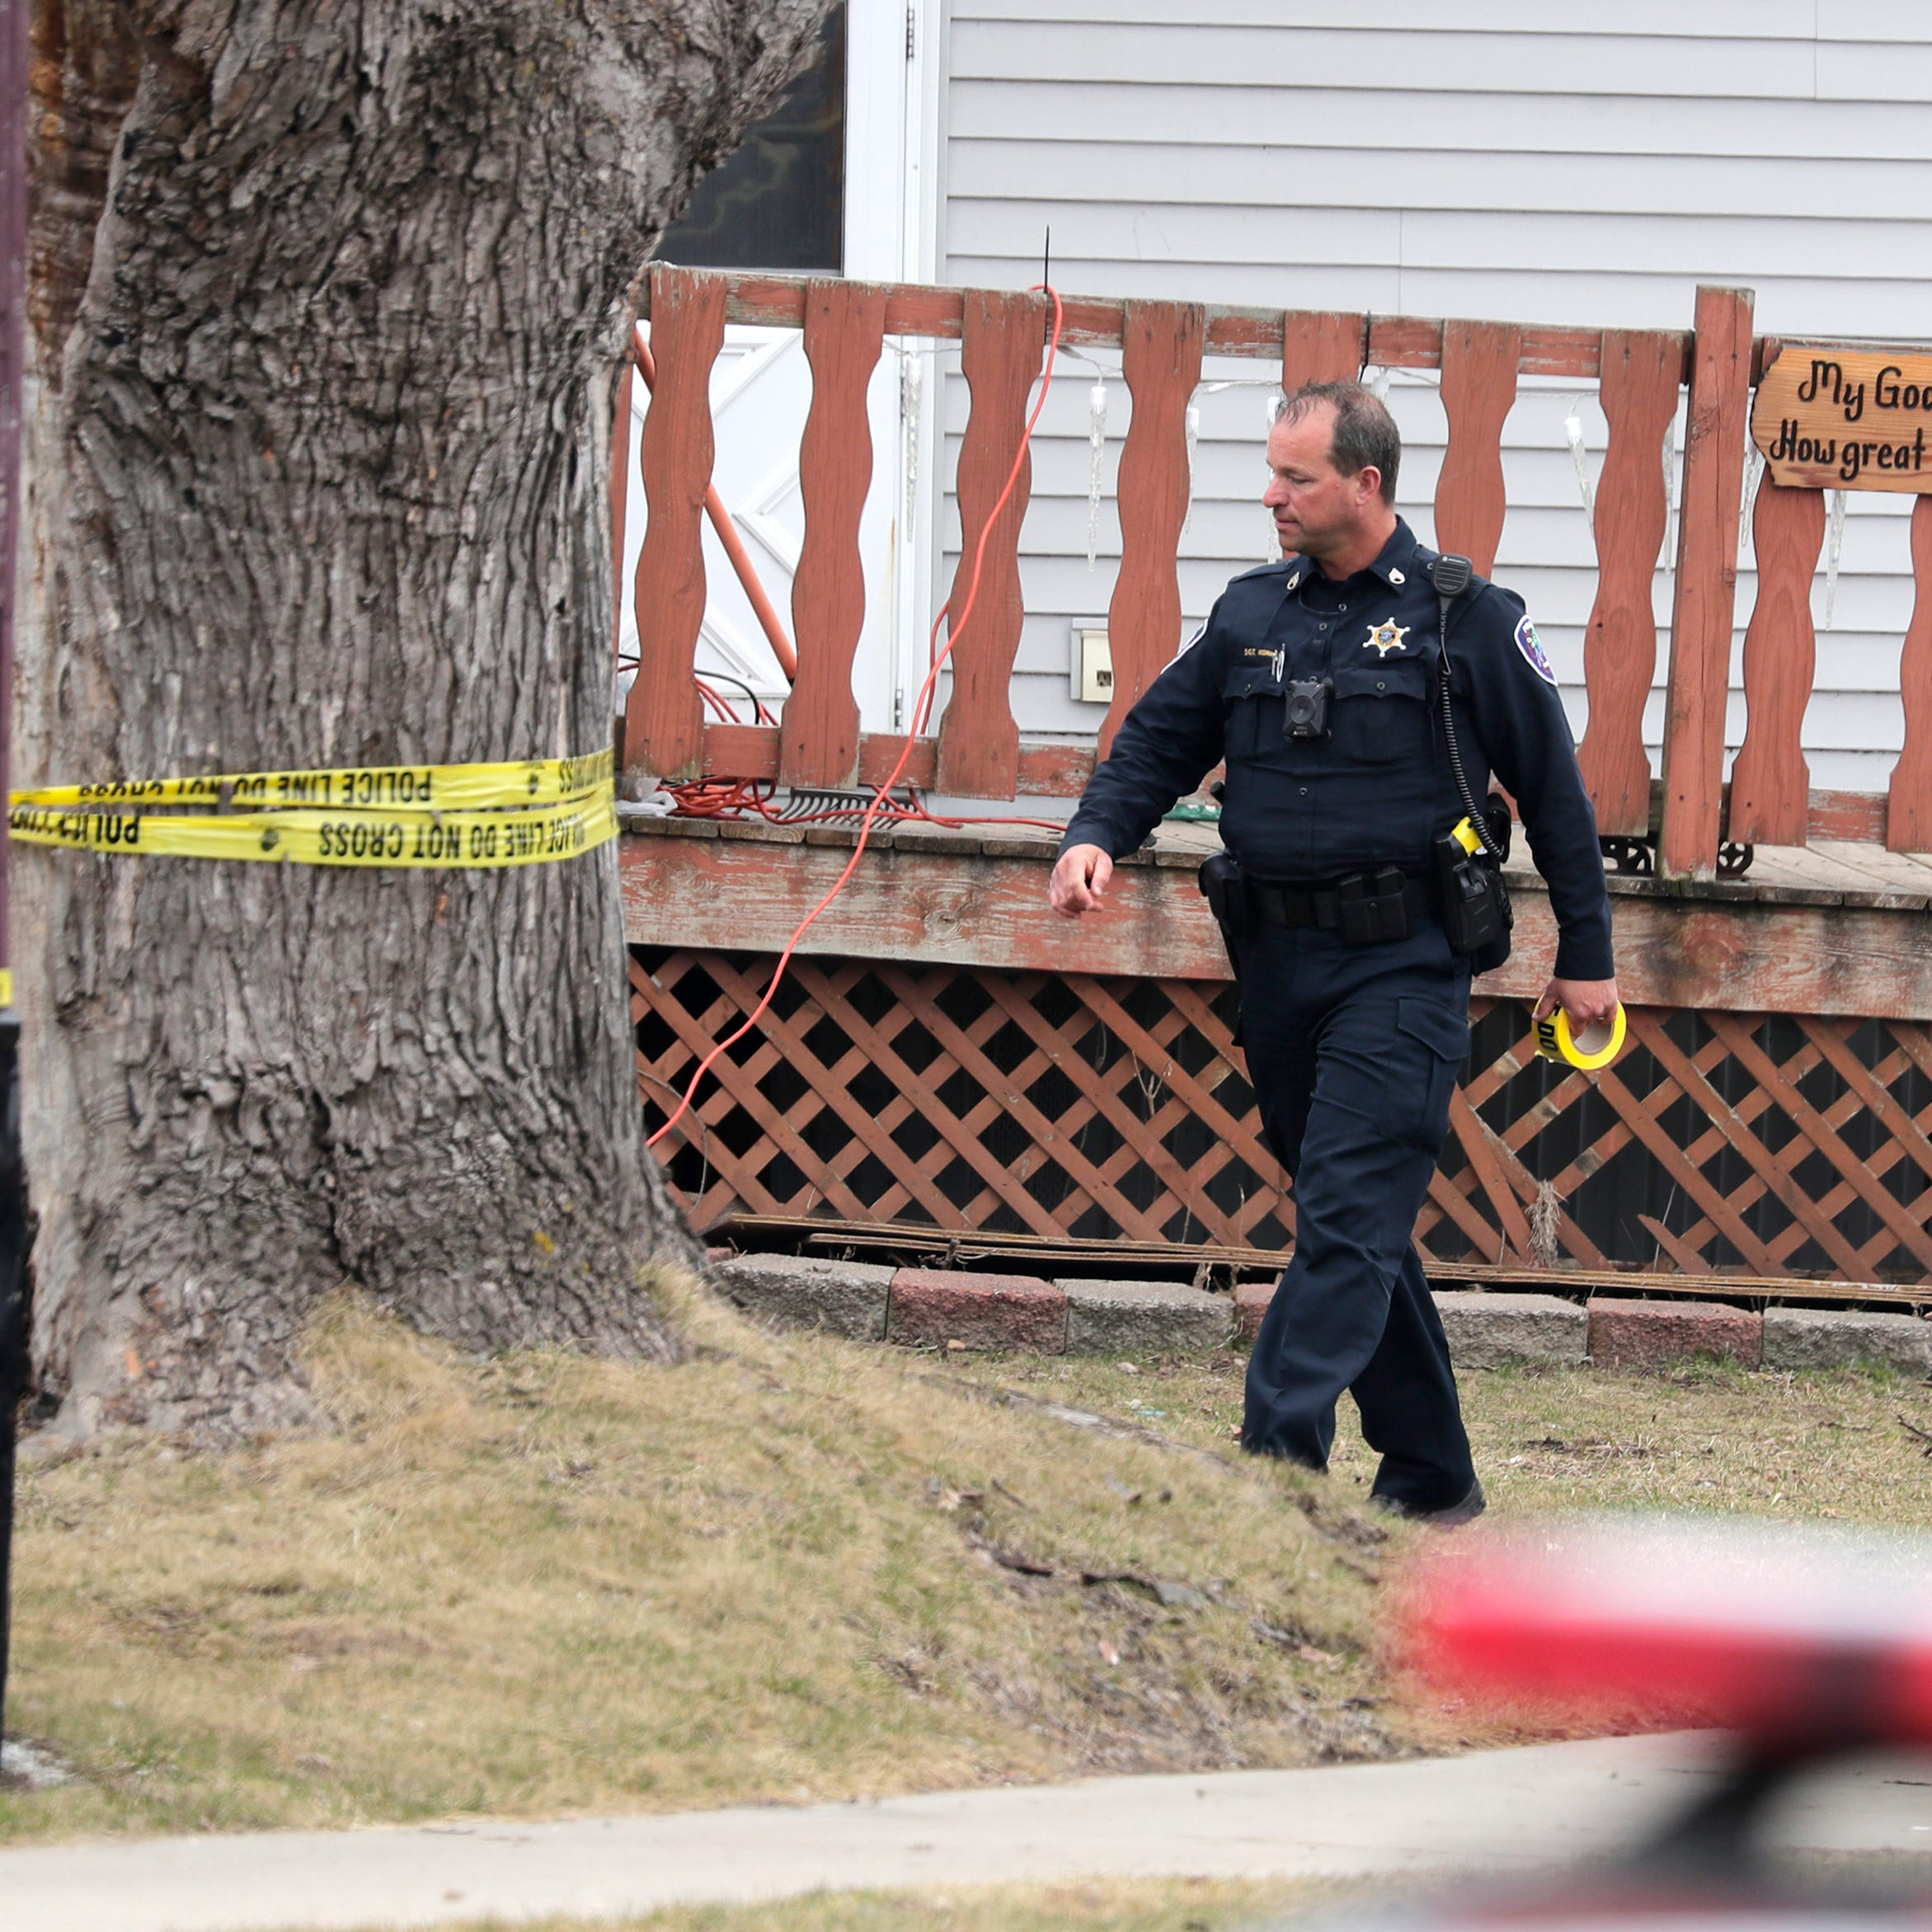 Three arrested in connection with shooting on Prim Rose Lane in Appleton | Police